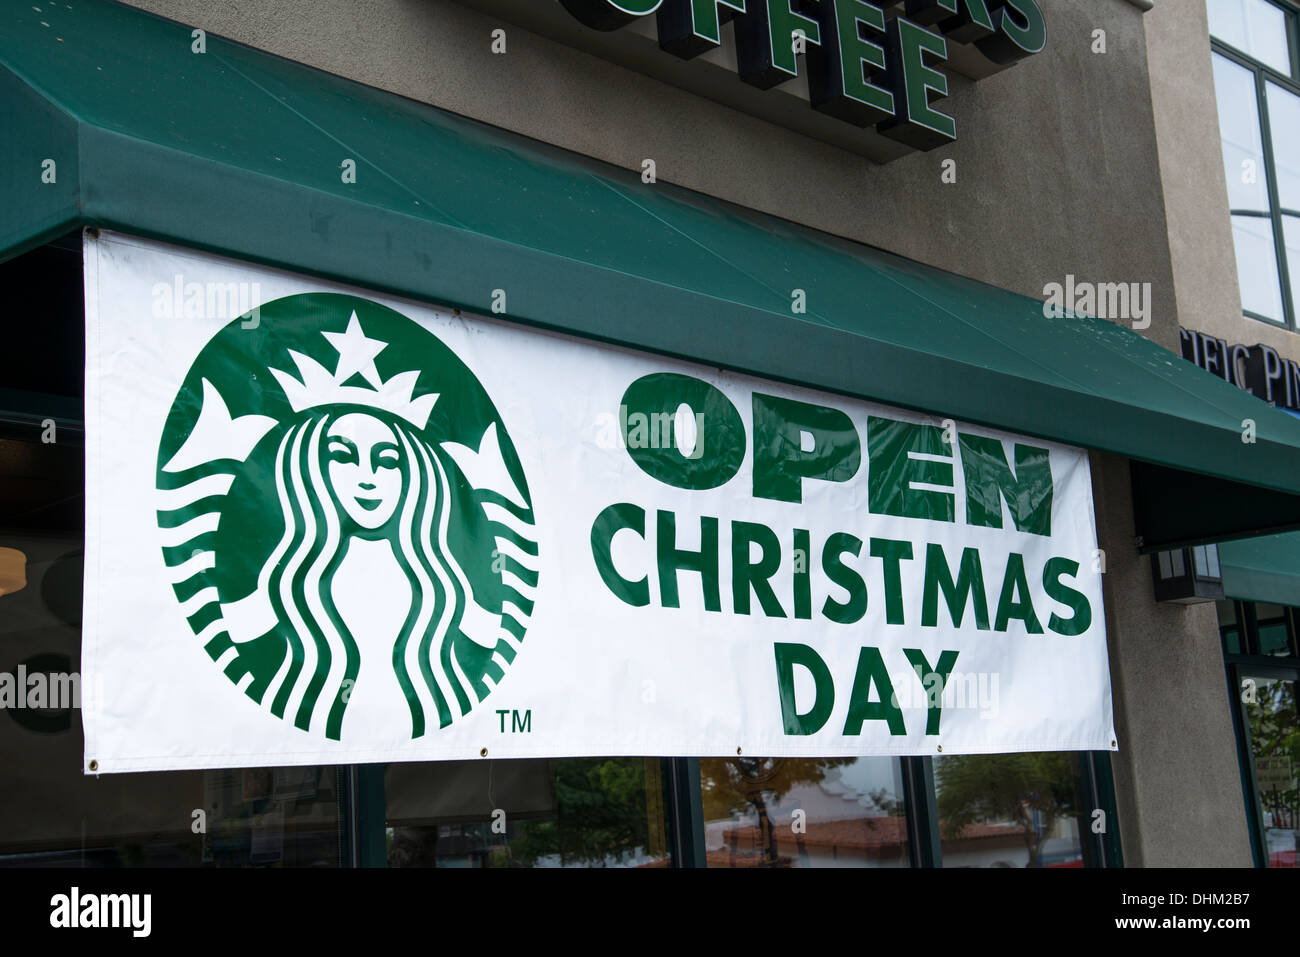 Is Starbucks Open On Christmas.Open Christmas Day Sign In Front Of Starbucks 784 West Washington Stock Photo Alamy